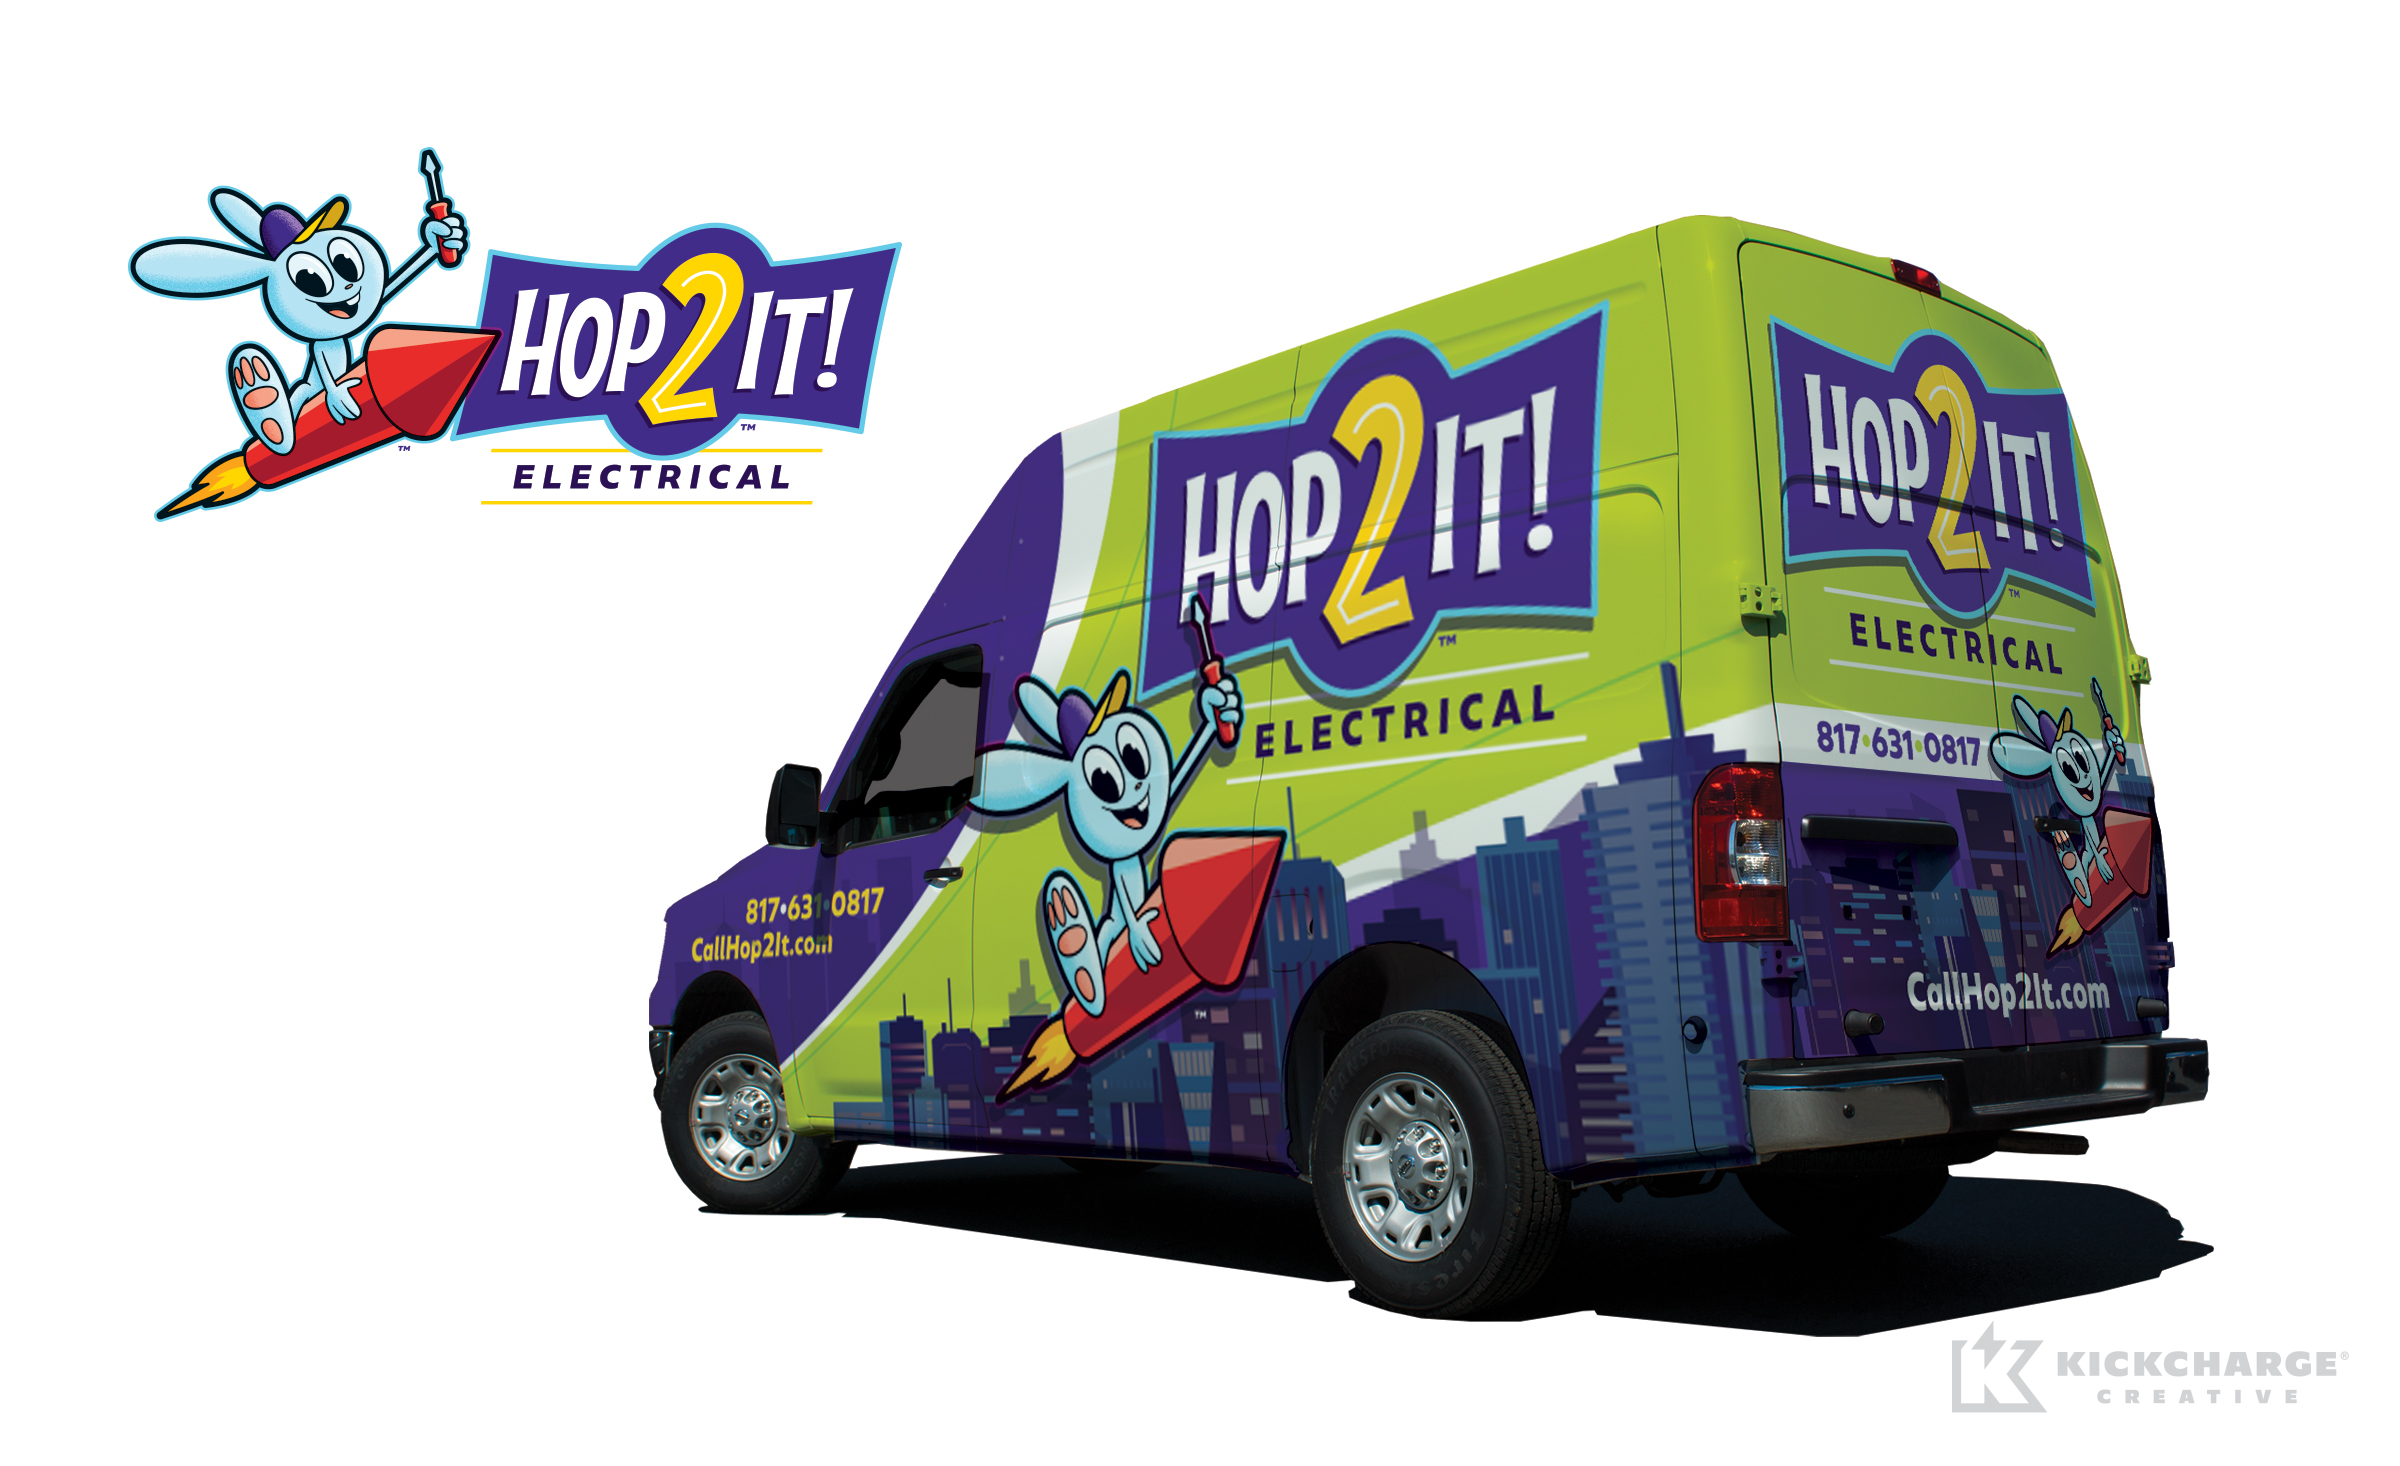 electrical truck wrap for Hop2It! Electrical